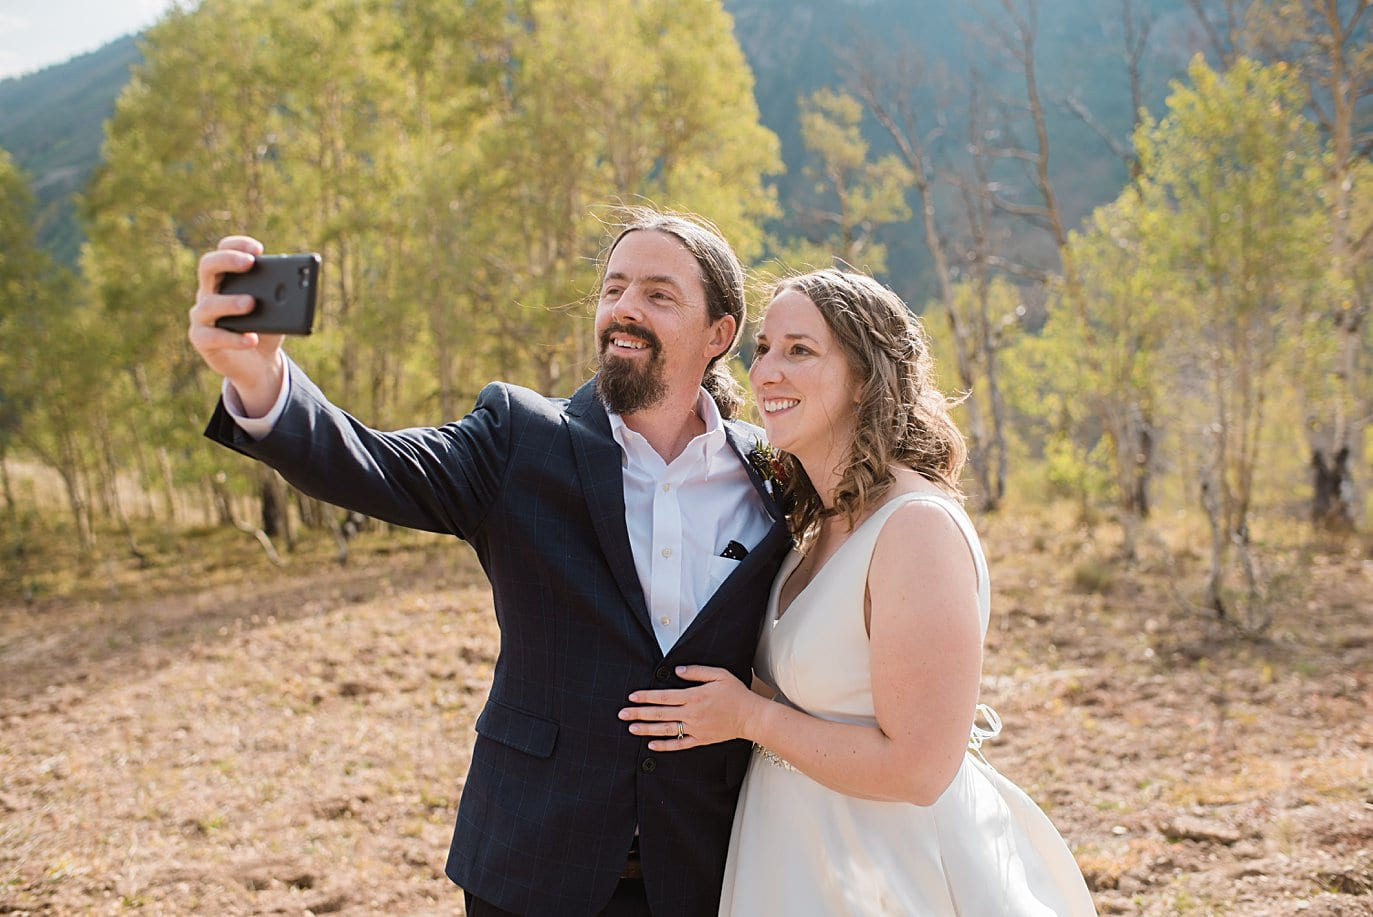 bride and groom selfie after wedding ceremony in Crested Butte by Denver wedding photographer Jennie Crate